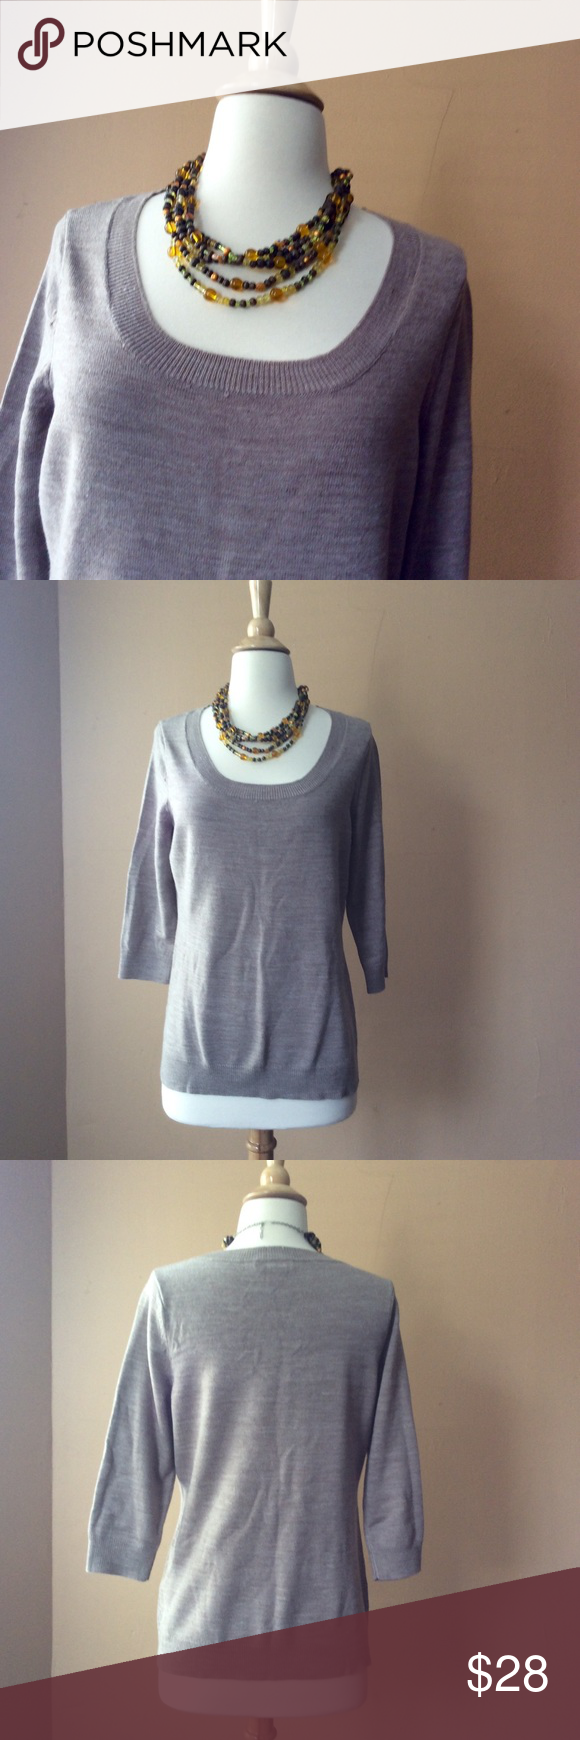 NY&Co. Round neck pullover NY&Co. Round neck pullover, color sand, 3/4 sleeves, soft at touch, 100% Acrylic  25inches long from shoulder down, Bust 18inches New York & Company Sweaters Crew & Scoop Necks